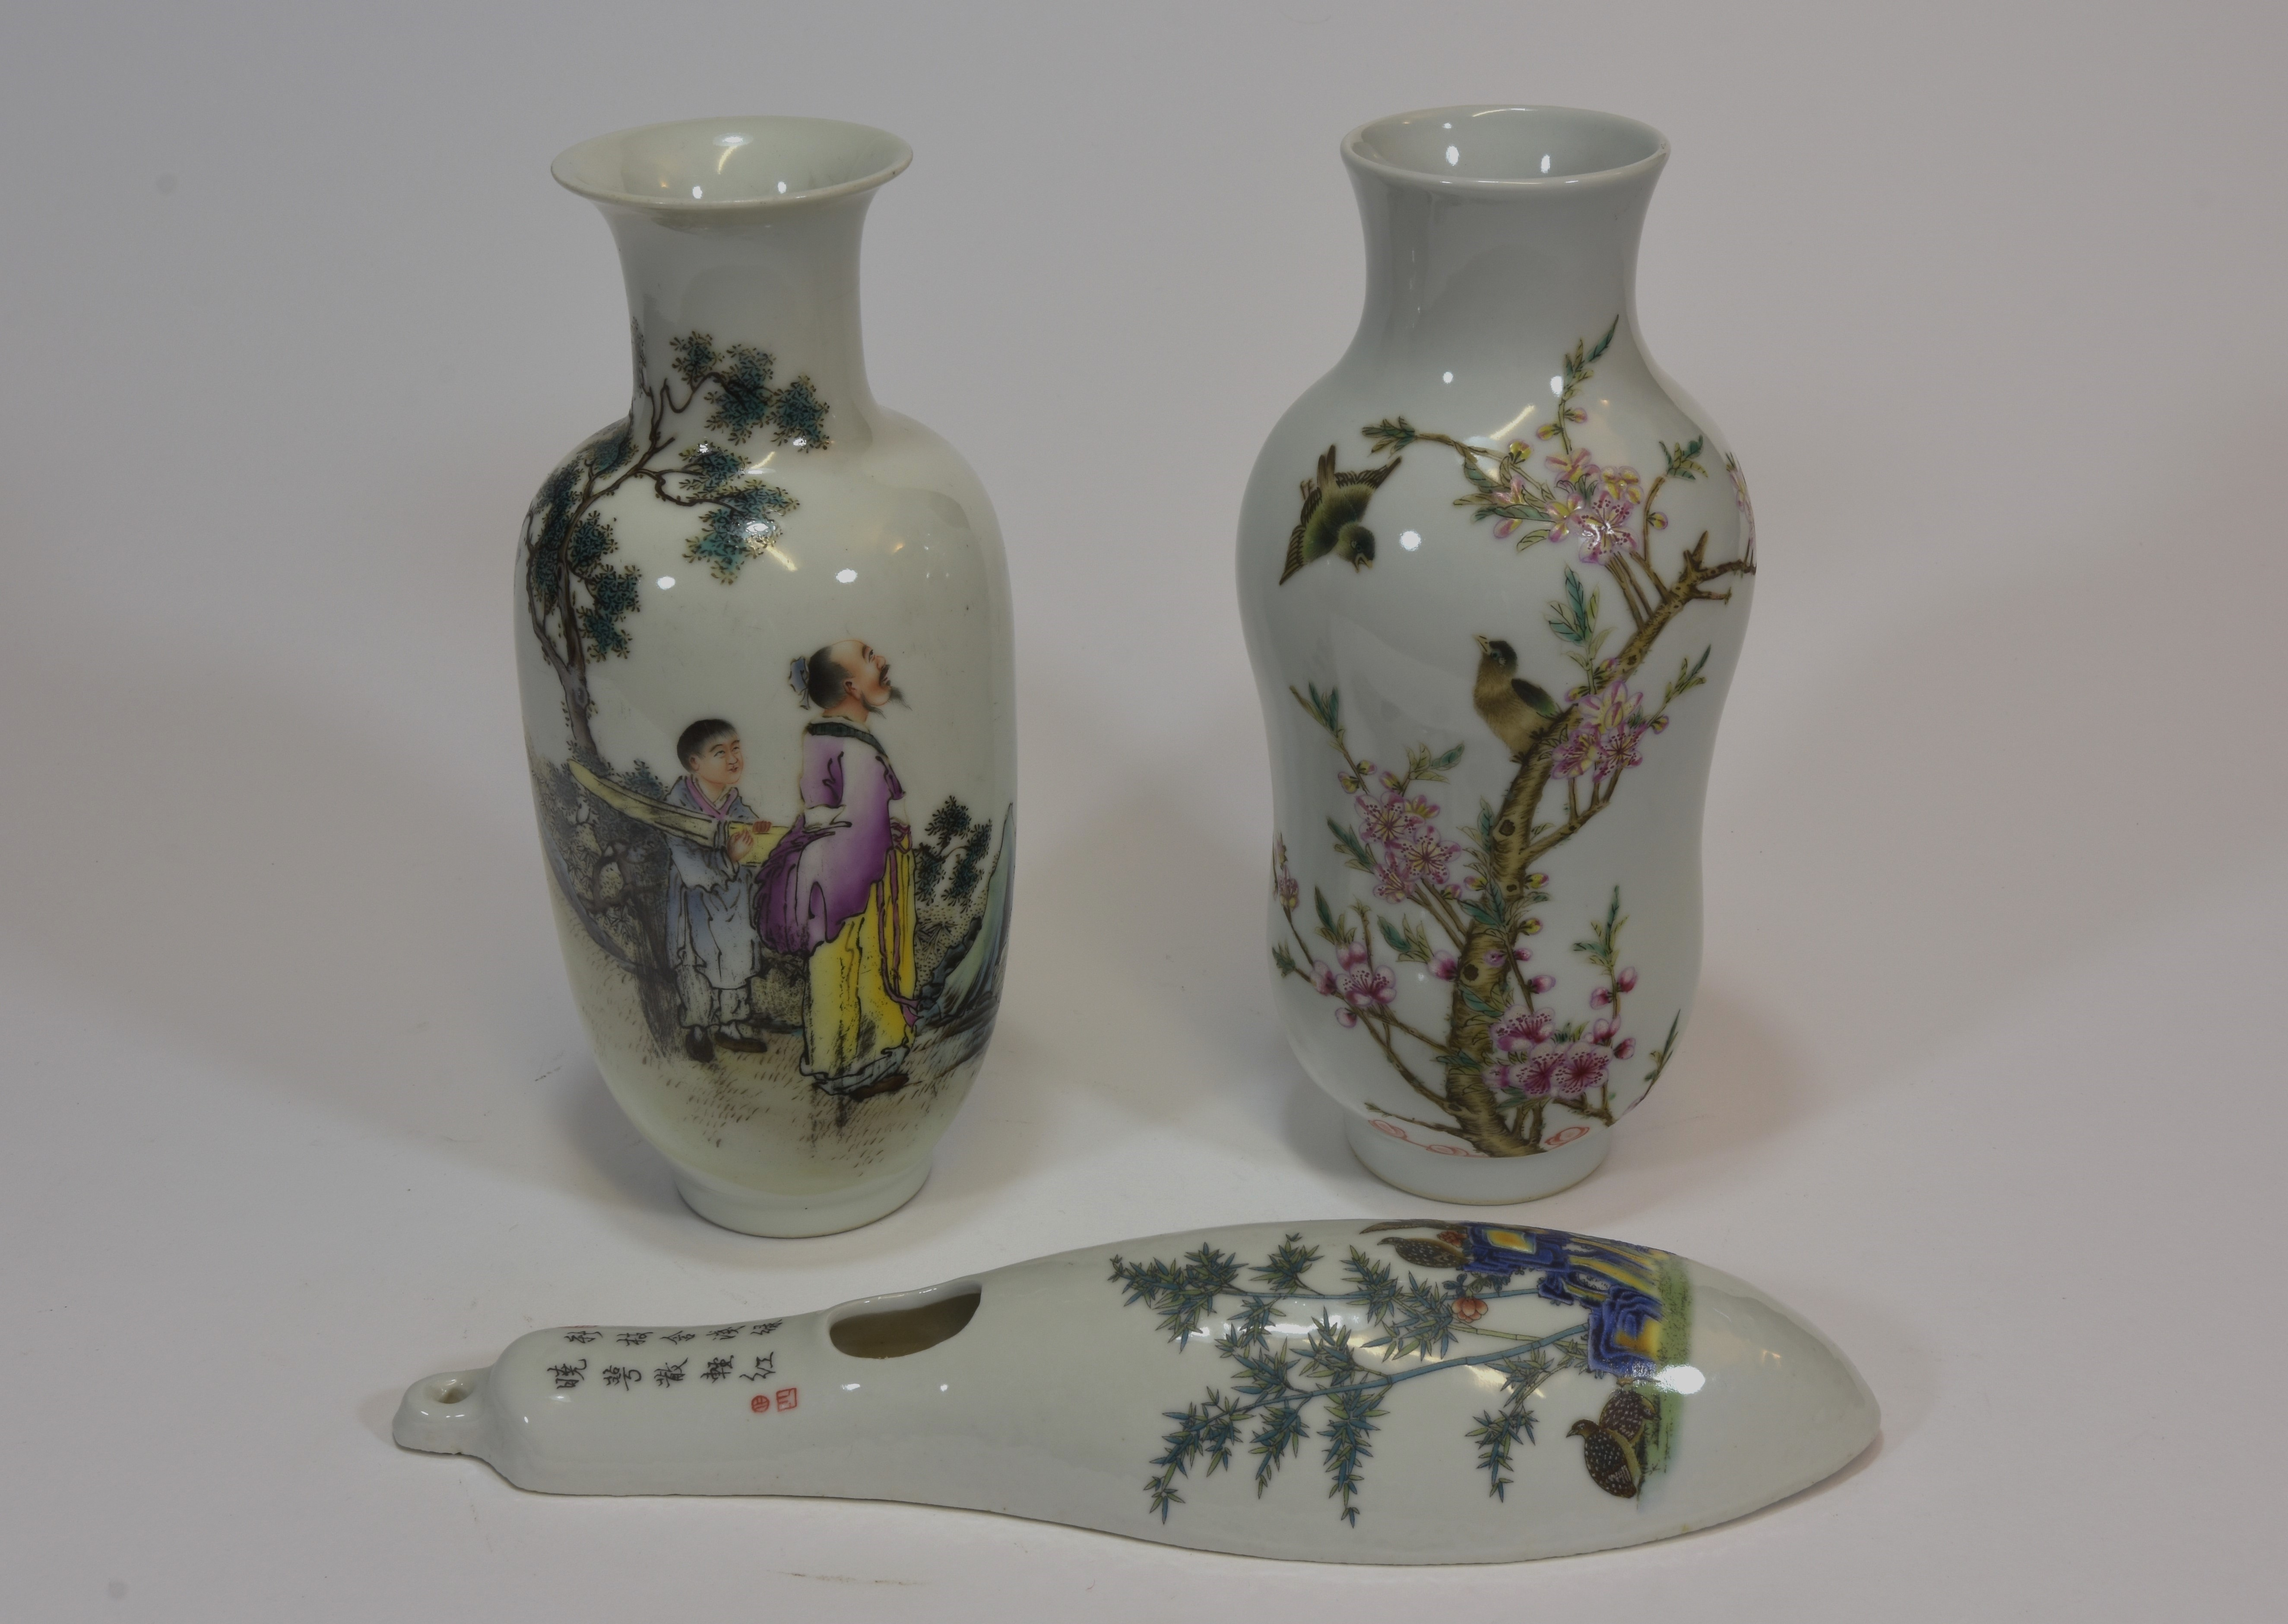 Lot 50 - A group of three famille rose vases (3) 19cm 文革時代粉彩瓷叁件